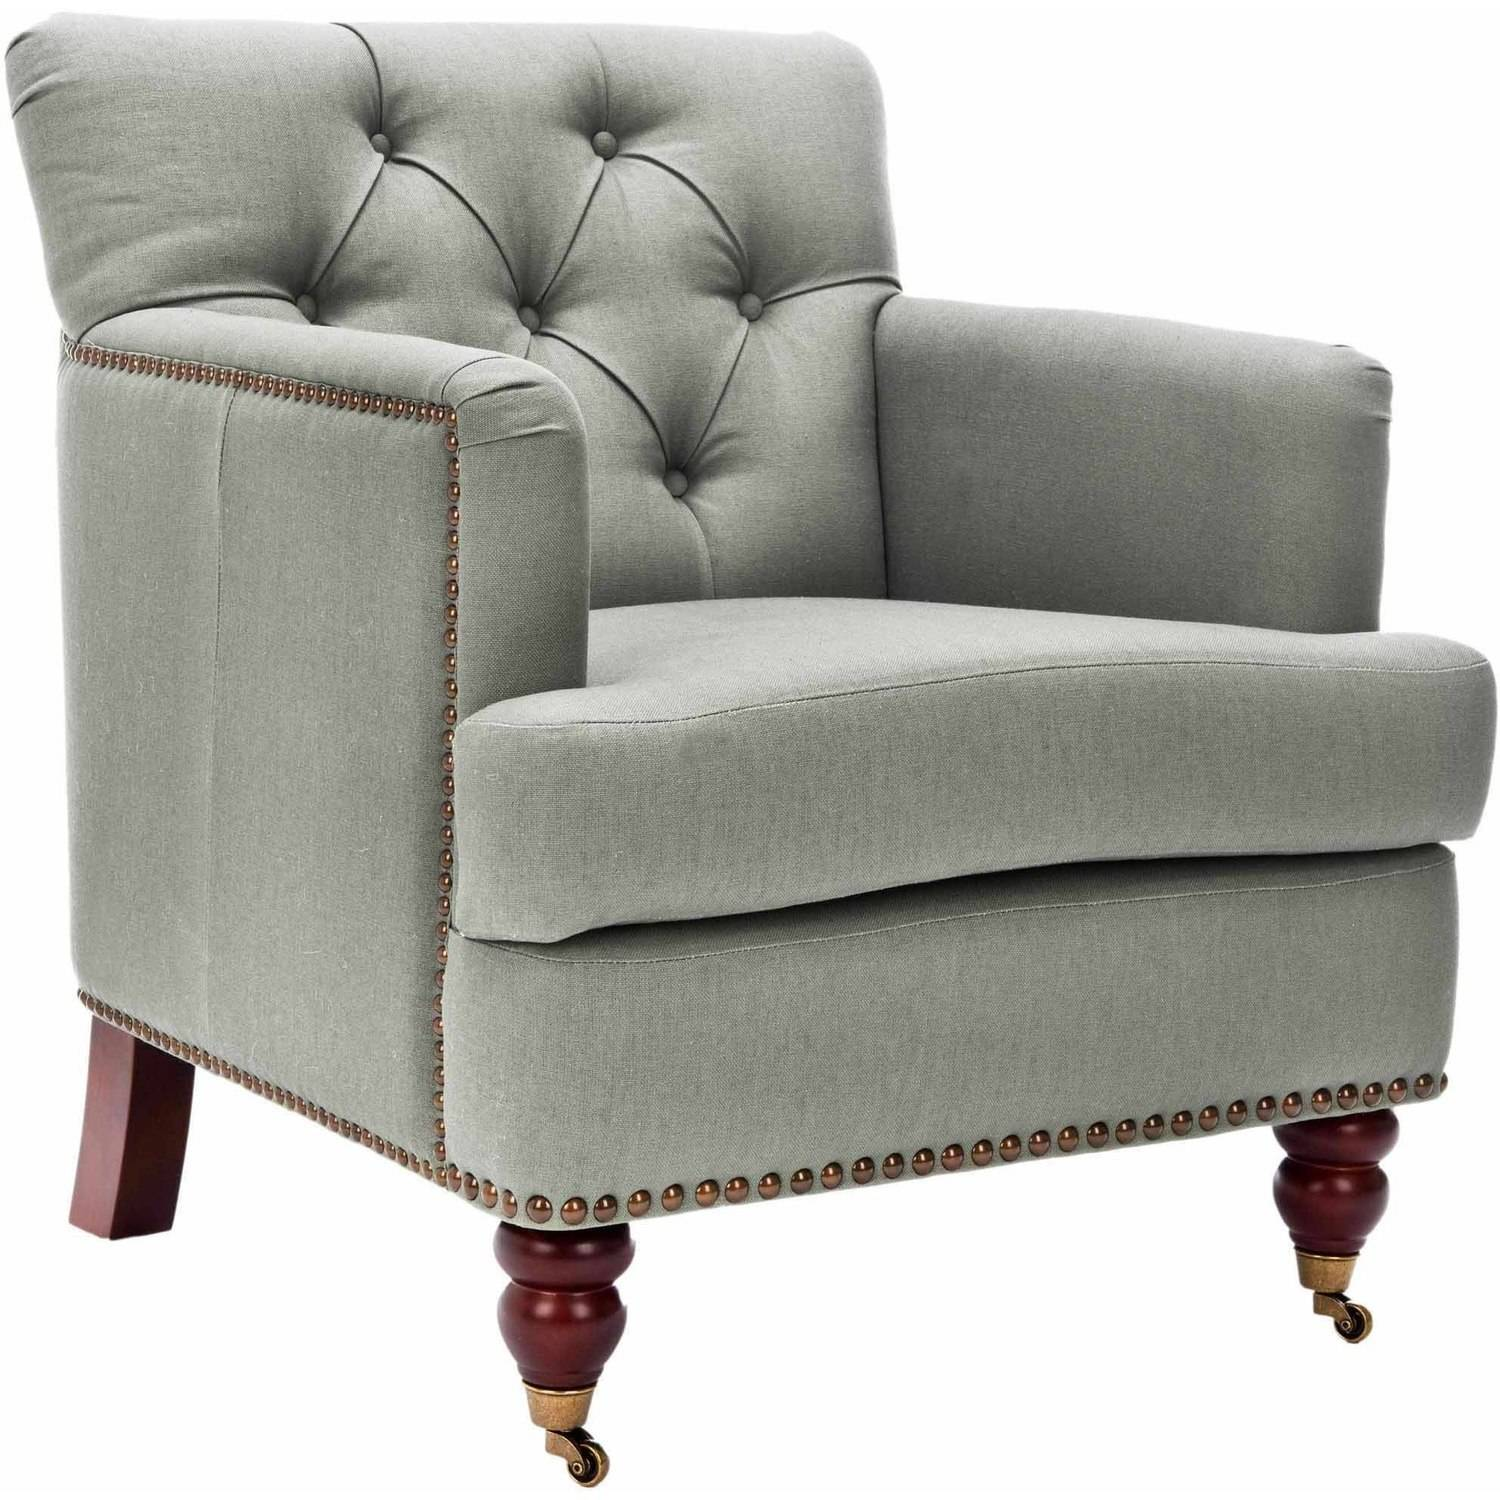 Adirondack Sessel Safavieh Colin Tufted Club Chair